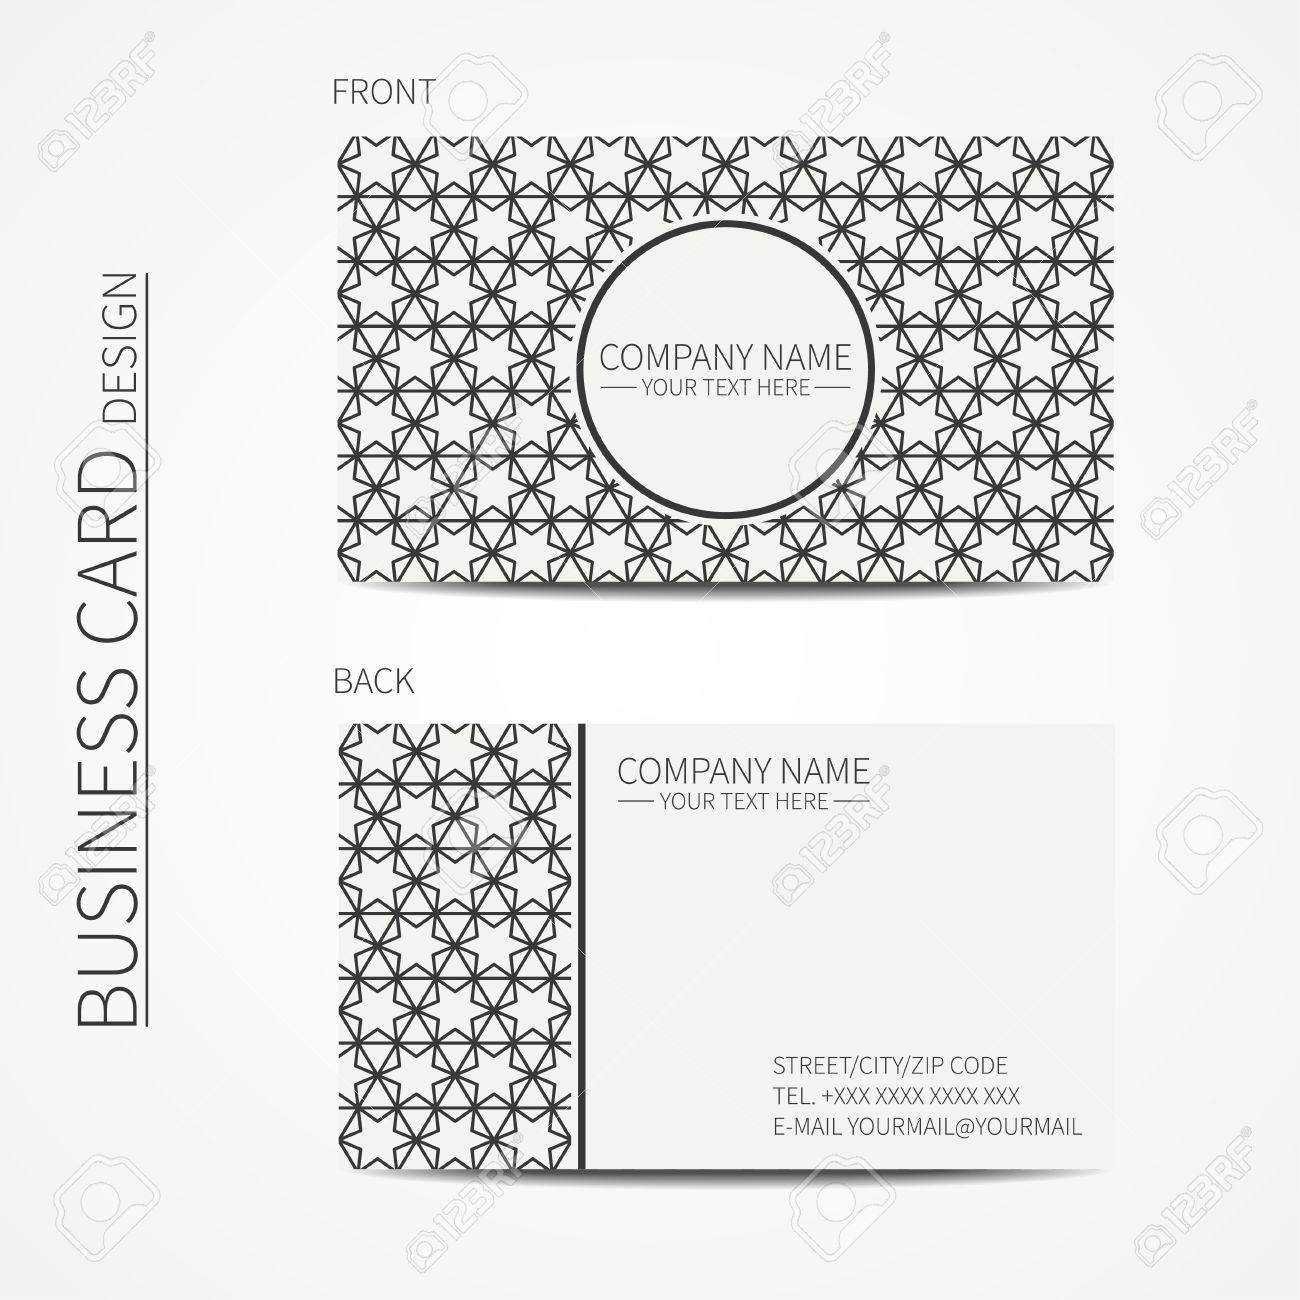 Star gear icon design element with business card template stock.